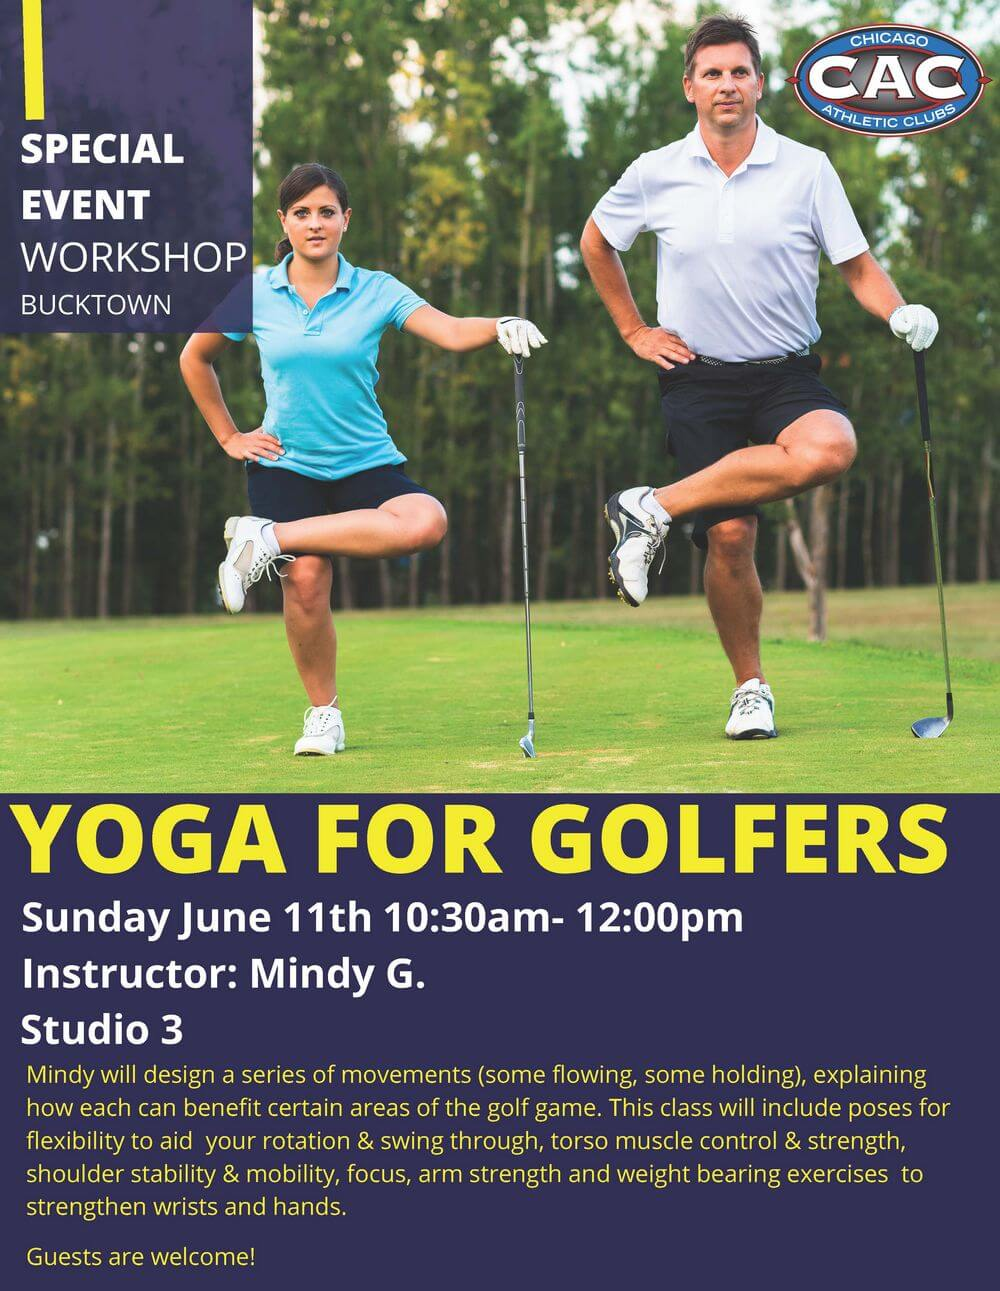 Yoga for Golfers BAC.jpg